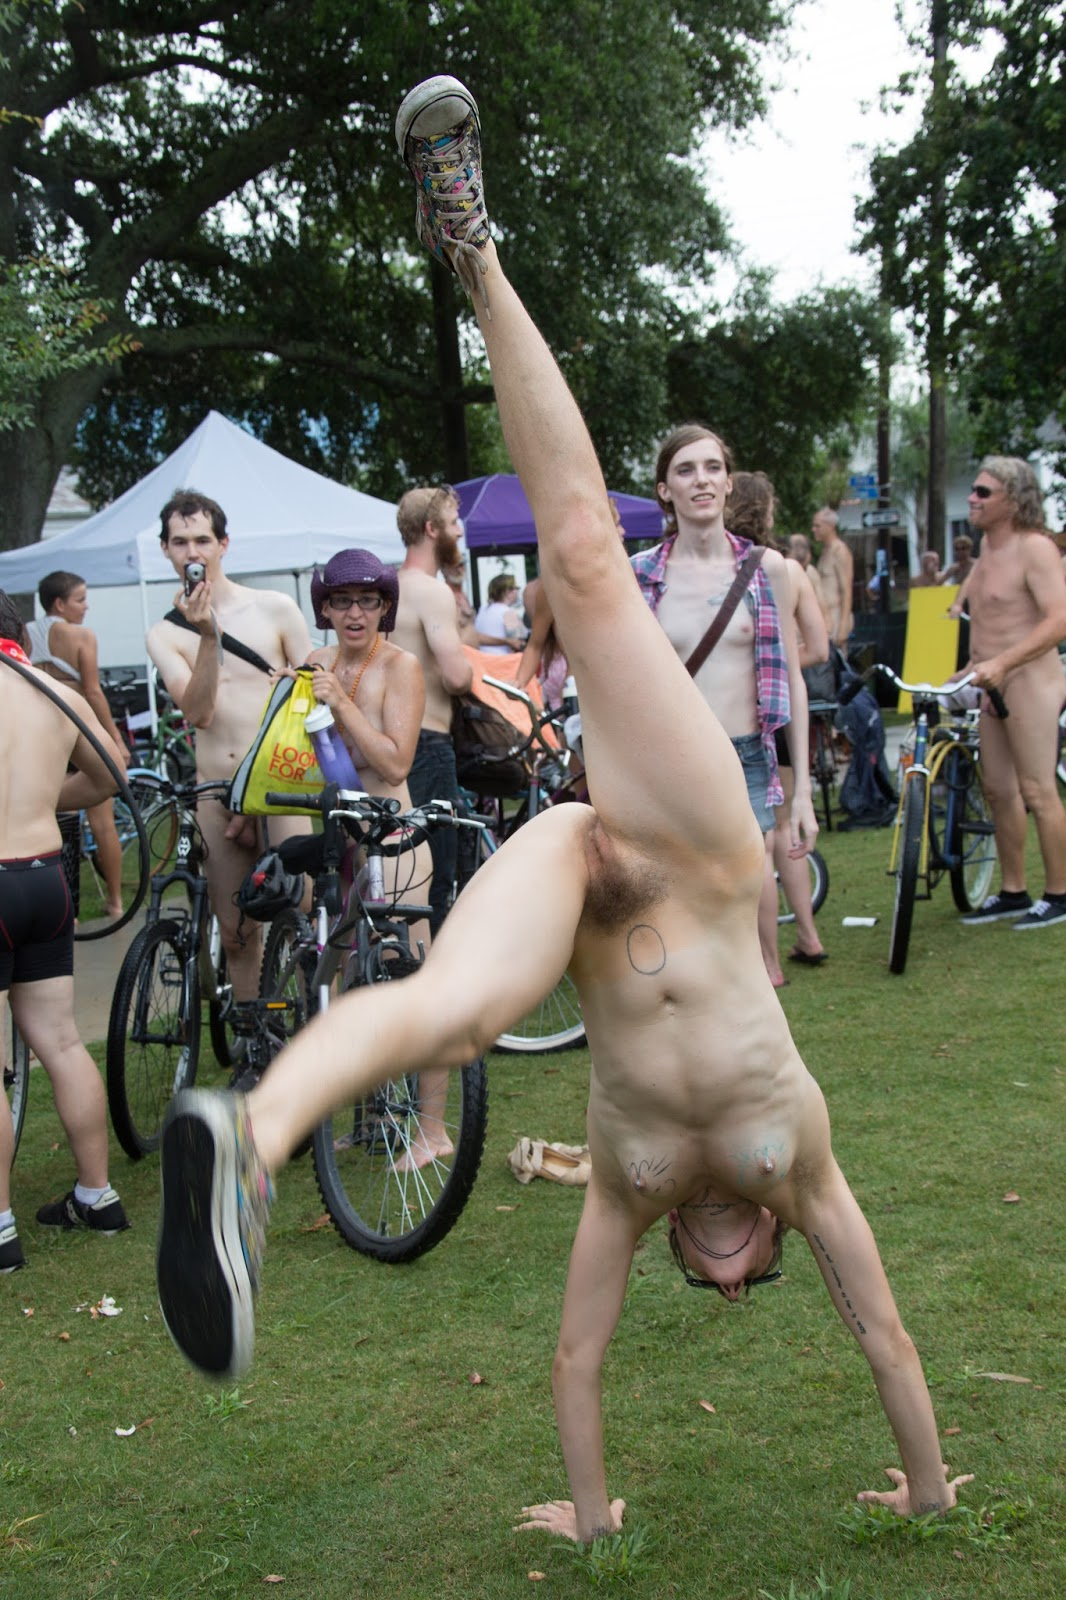 naked on a bicycle